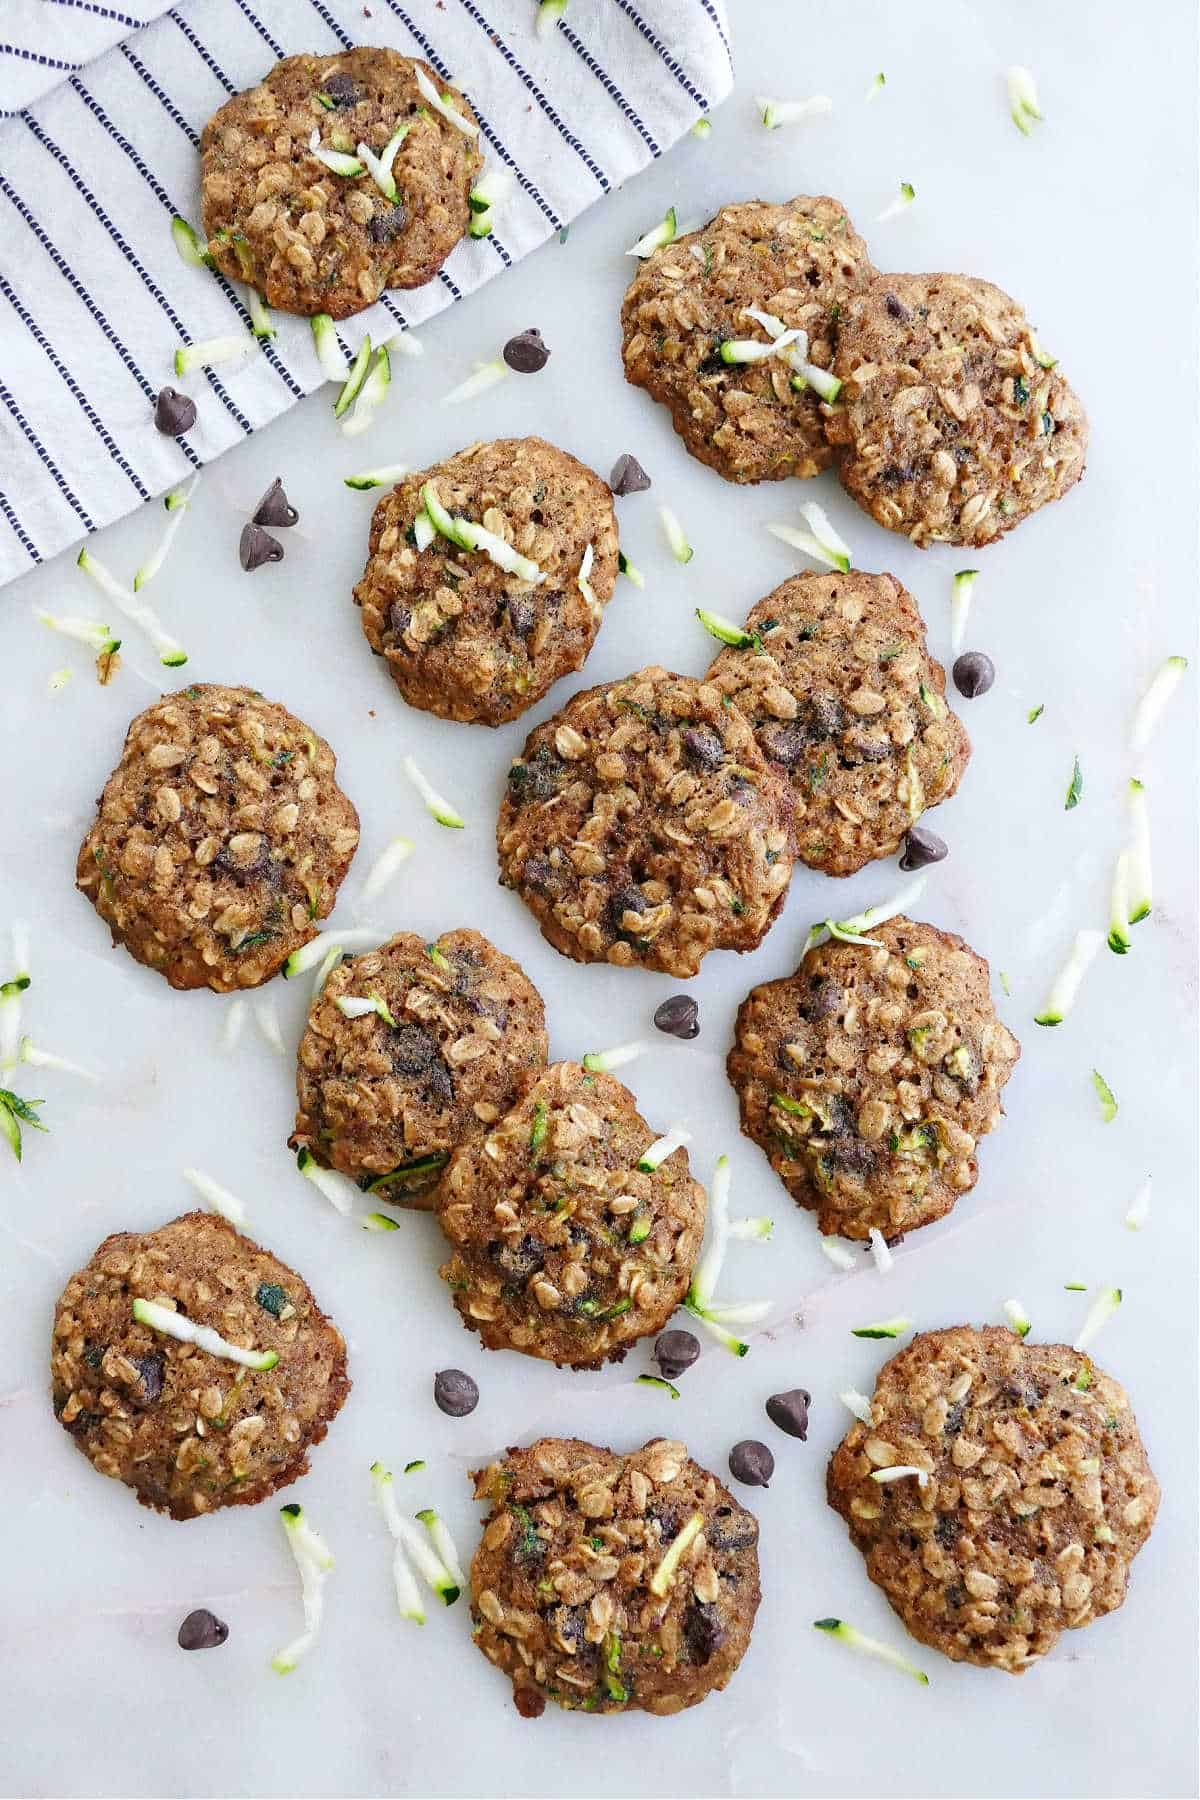 zucchini chocolate chip cookies spread out on a counter next to a napkin and shredded zucchini